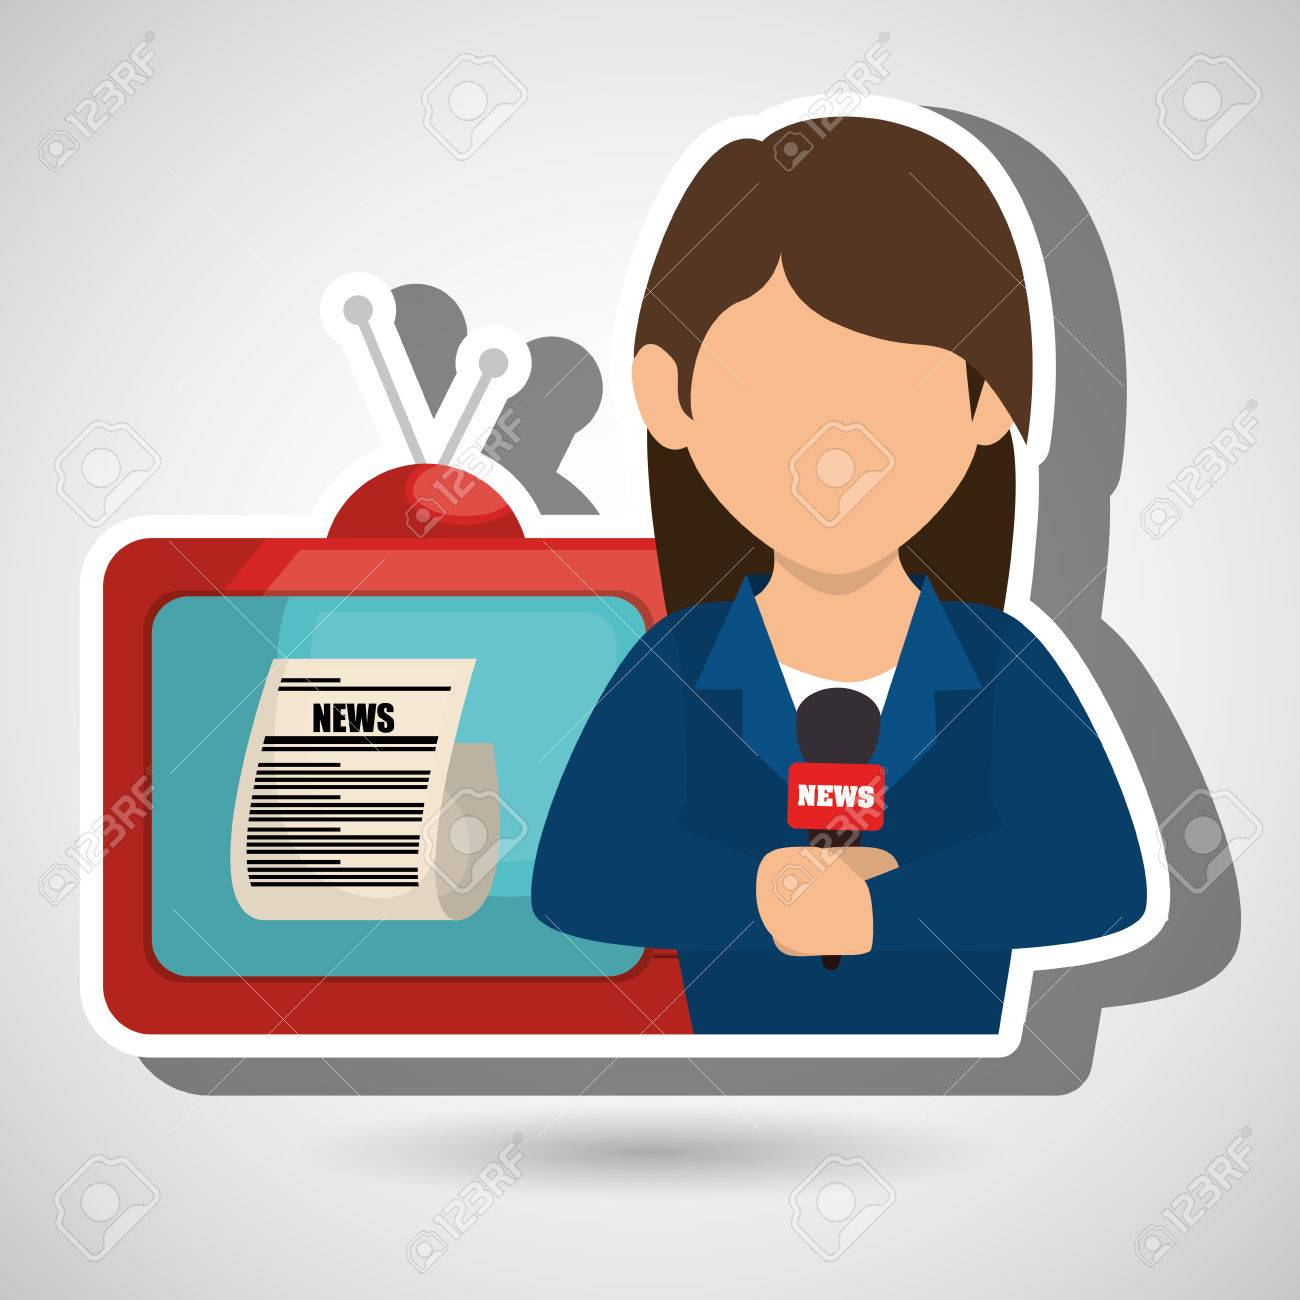 Woman Journalist News Tv Vector Illustration Royalty Free Cliparts